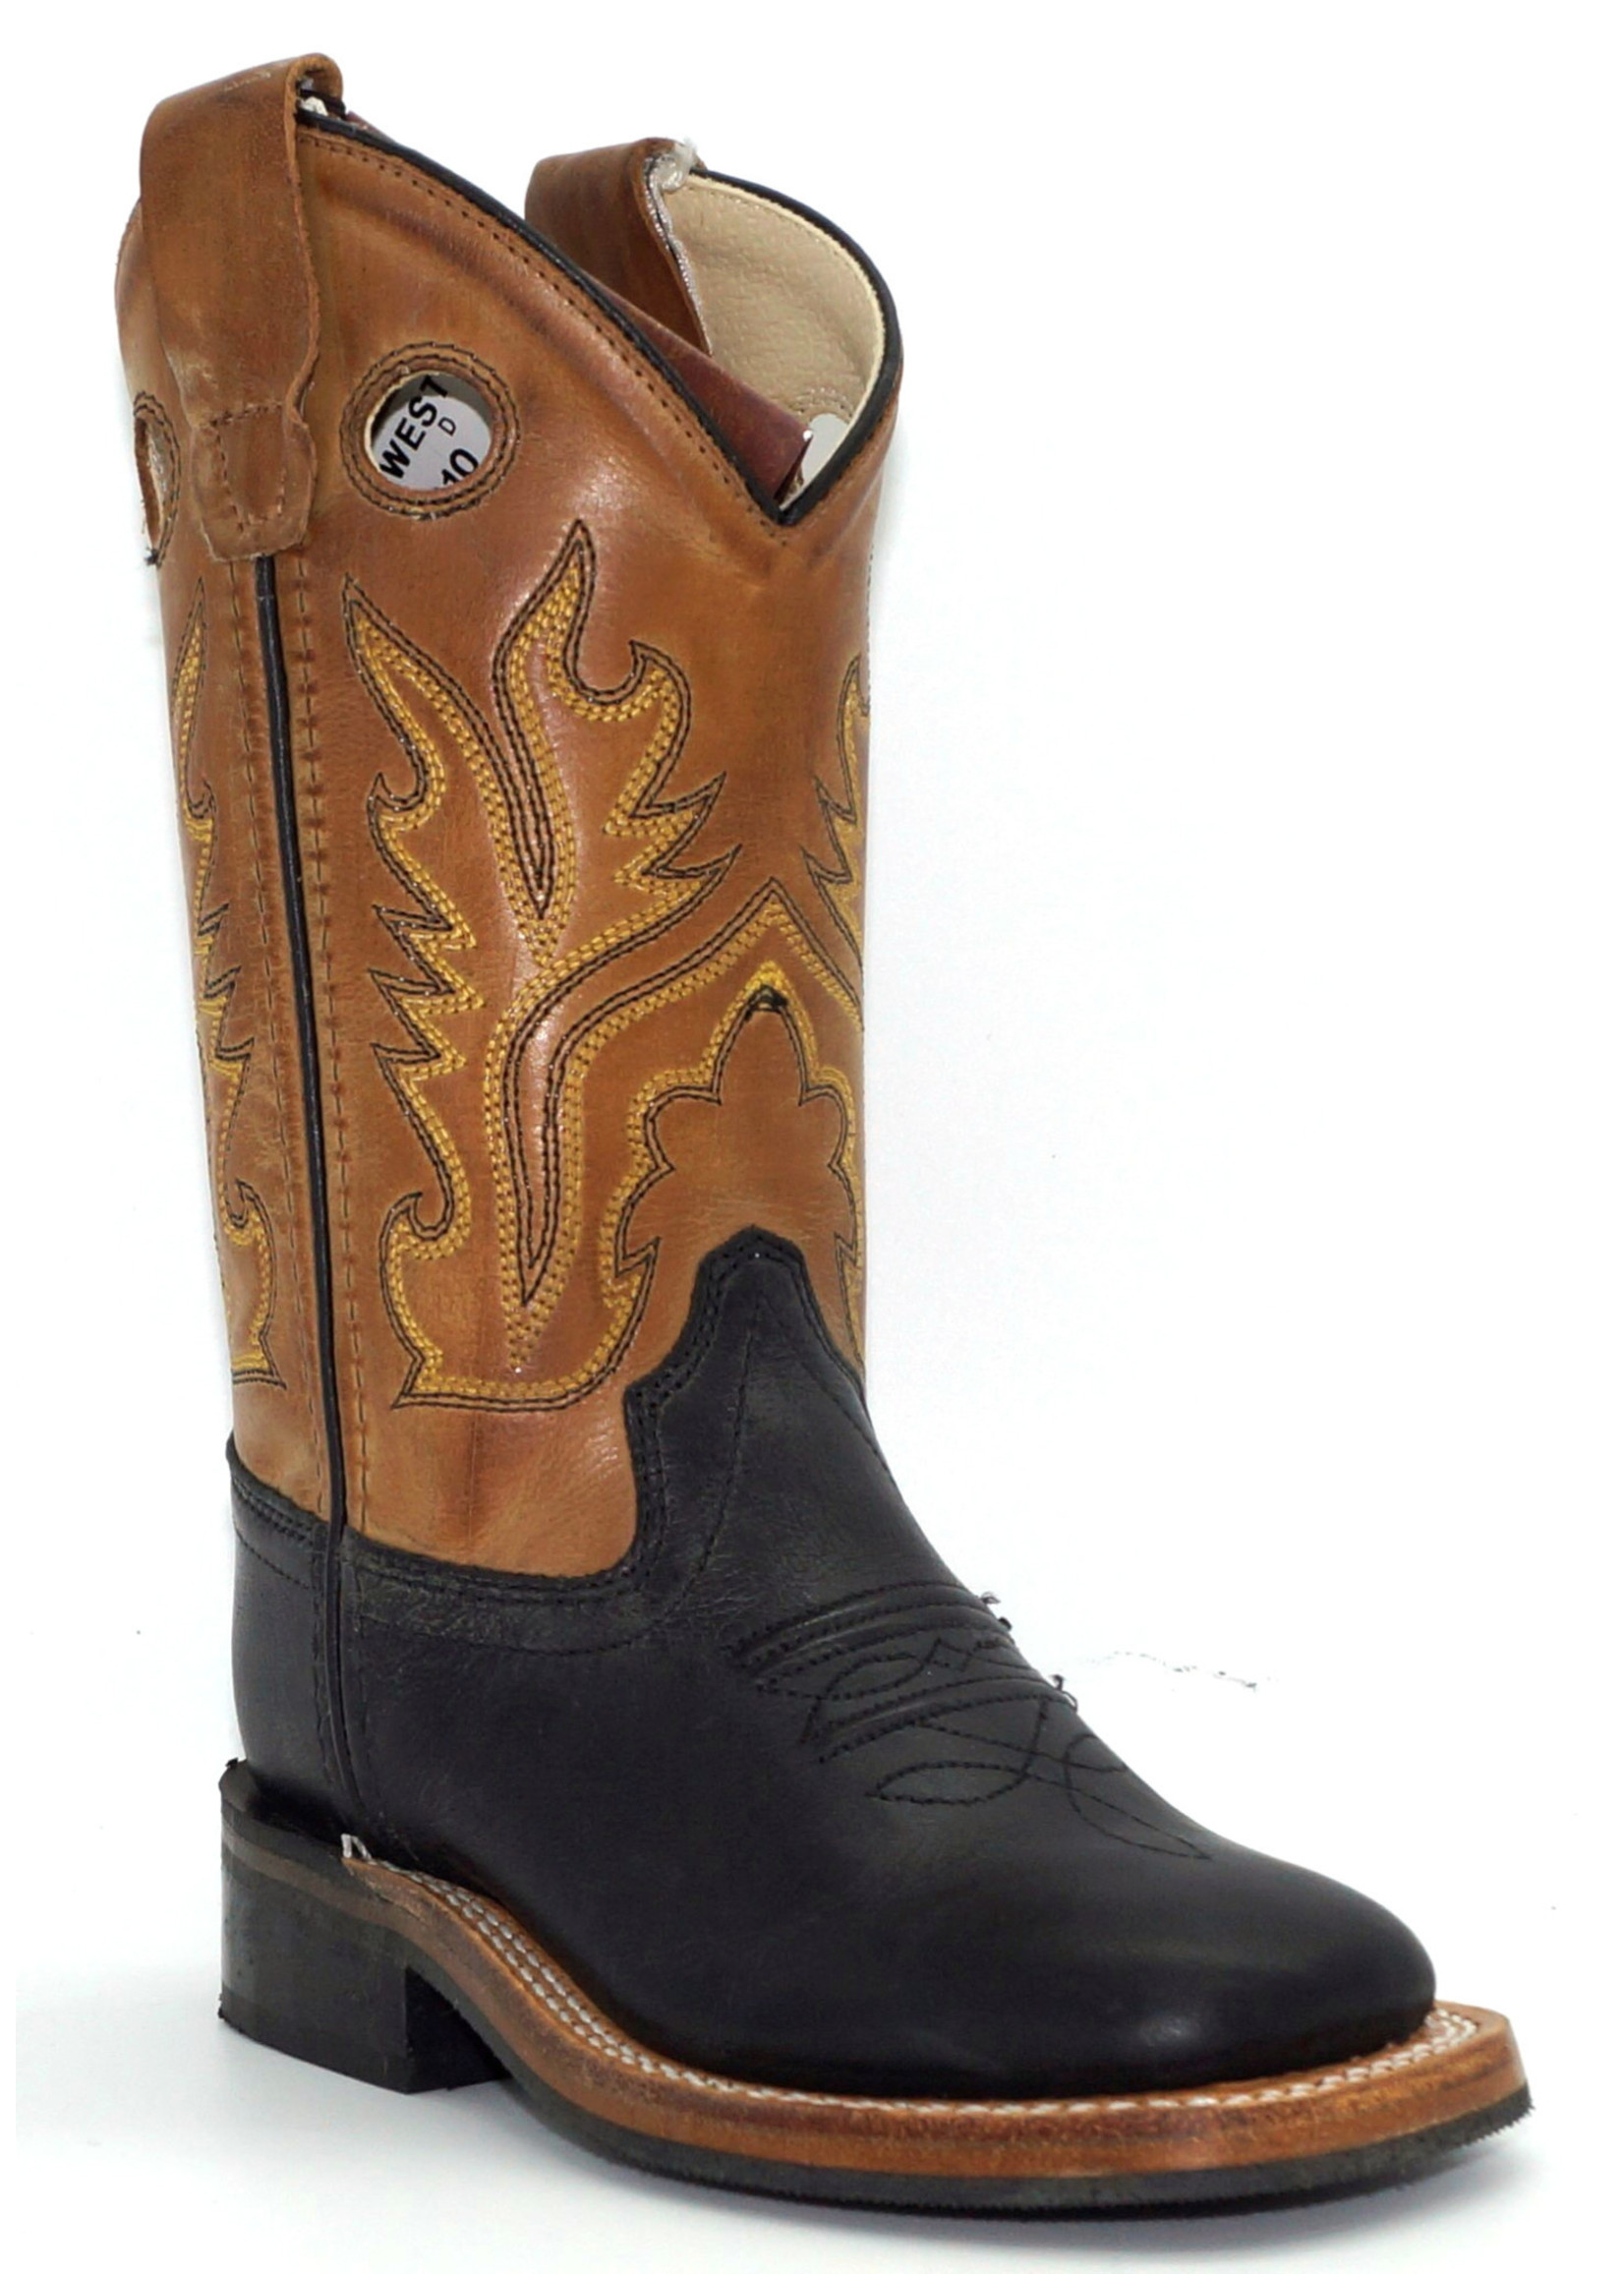 Old West Children's Calf Leather Western Boot BSC1810